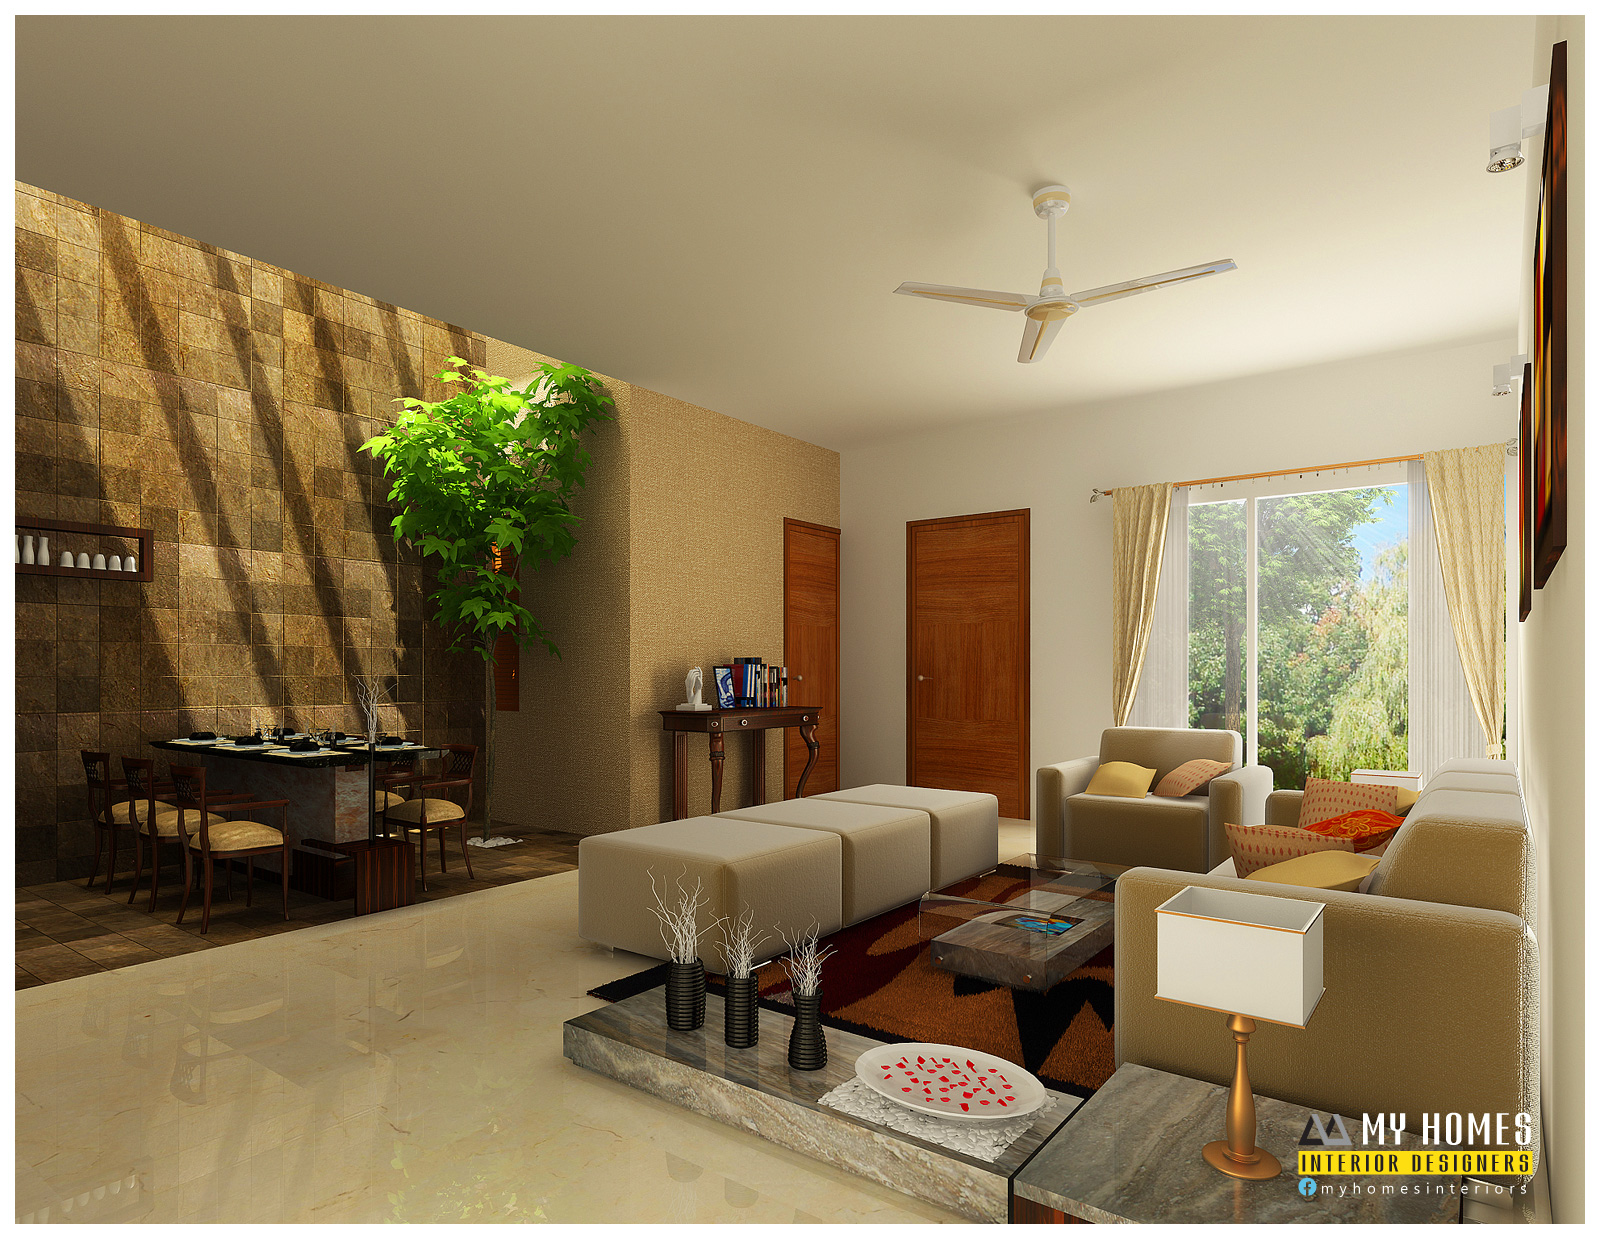 Kerala interior design ideas from designing company thrissur for Interior designs idea